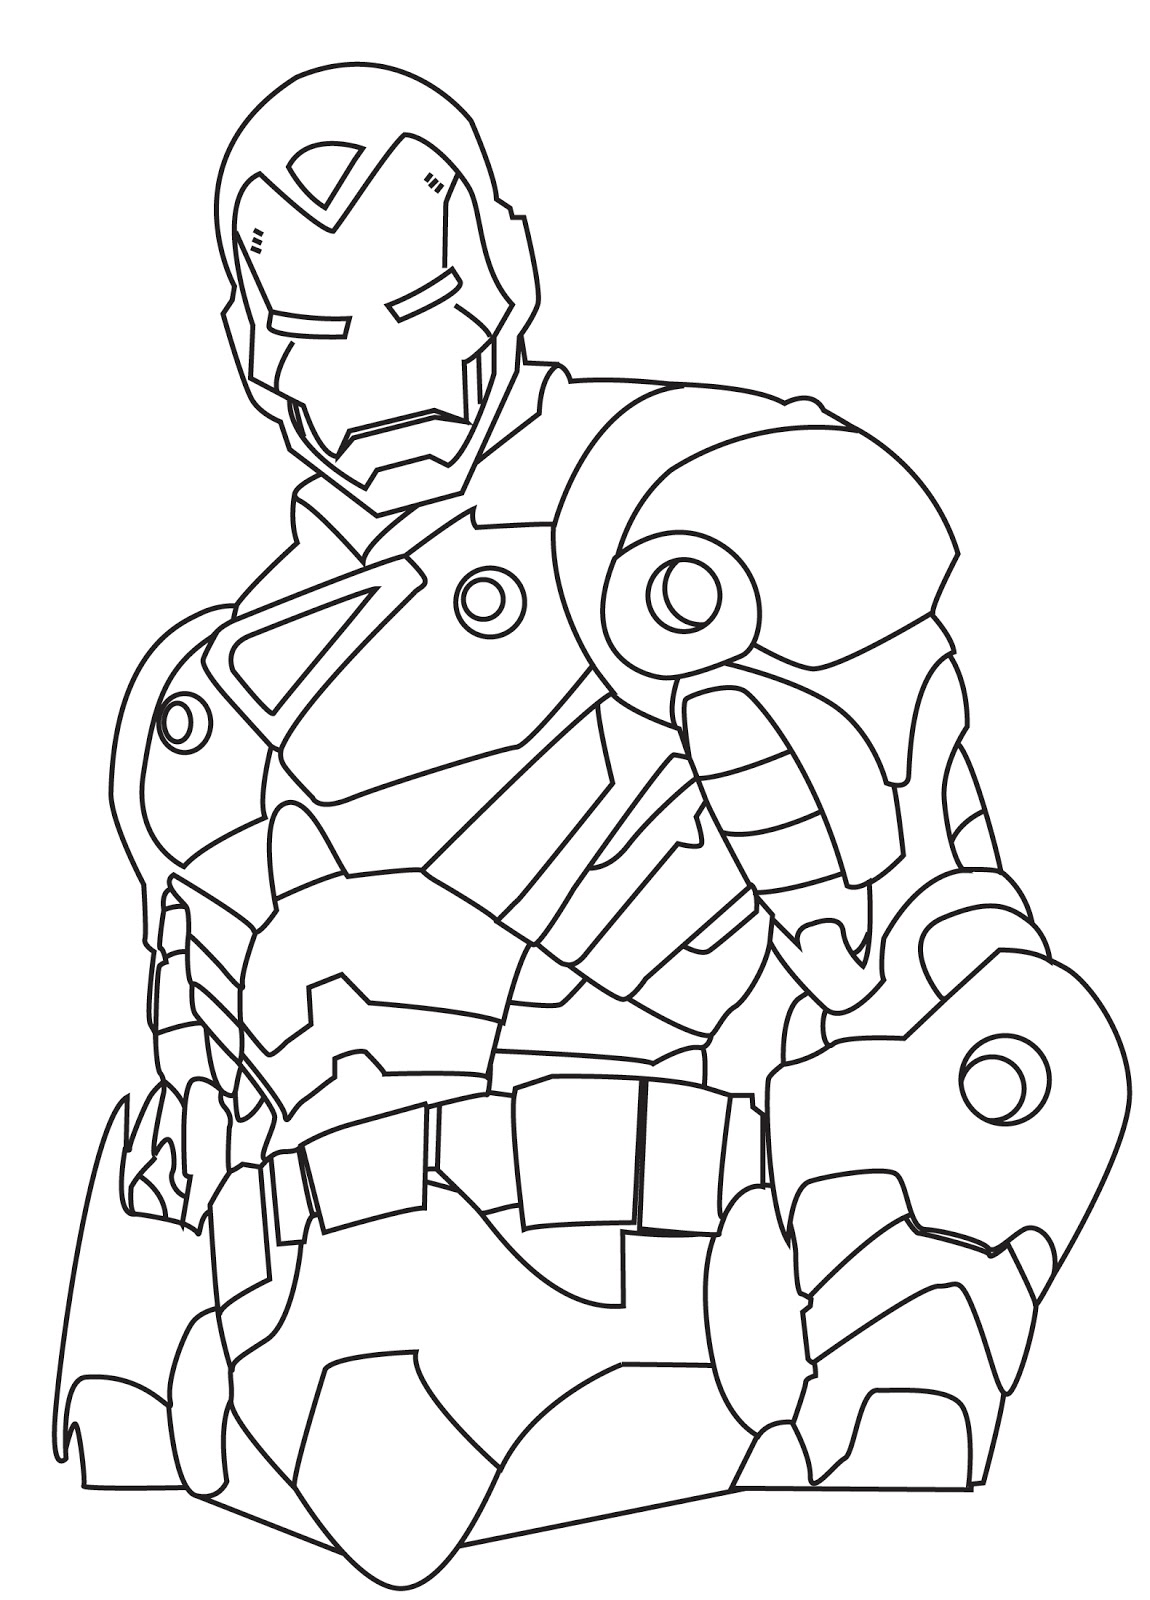 Ironman coloring pages coloring pages for Ironman coloring pages free